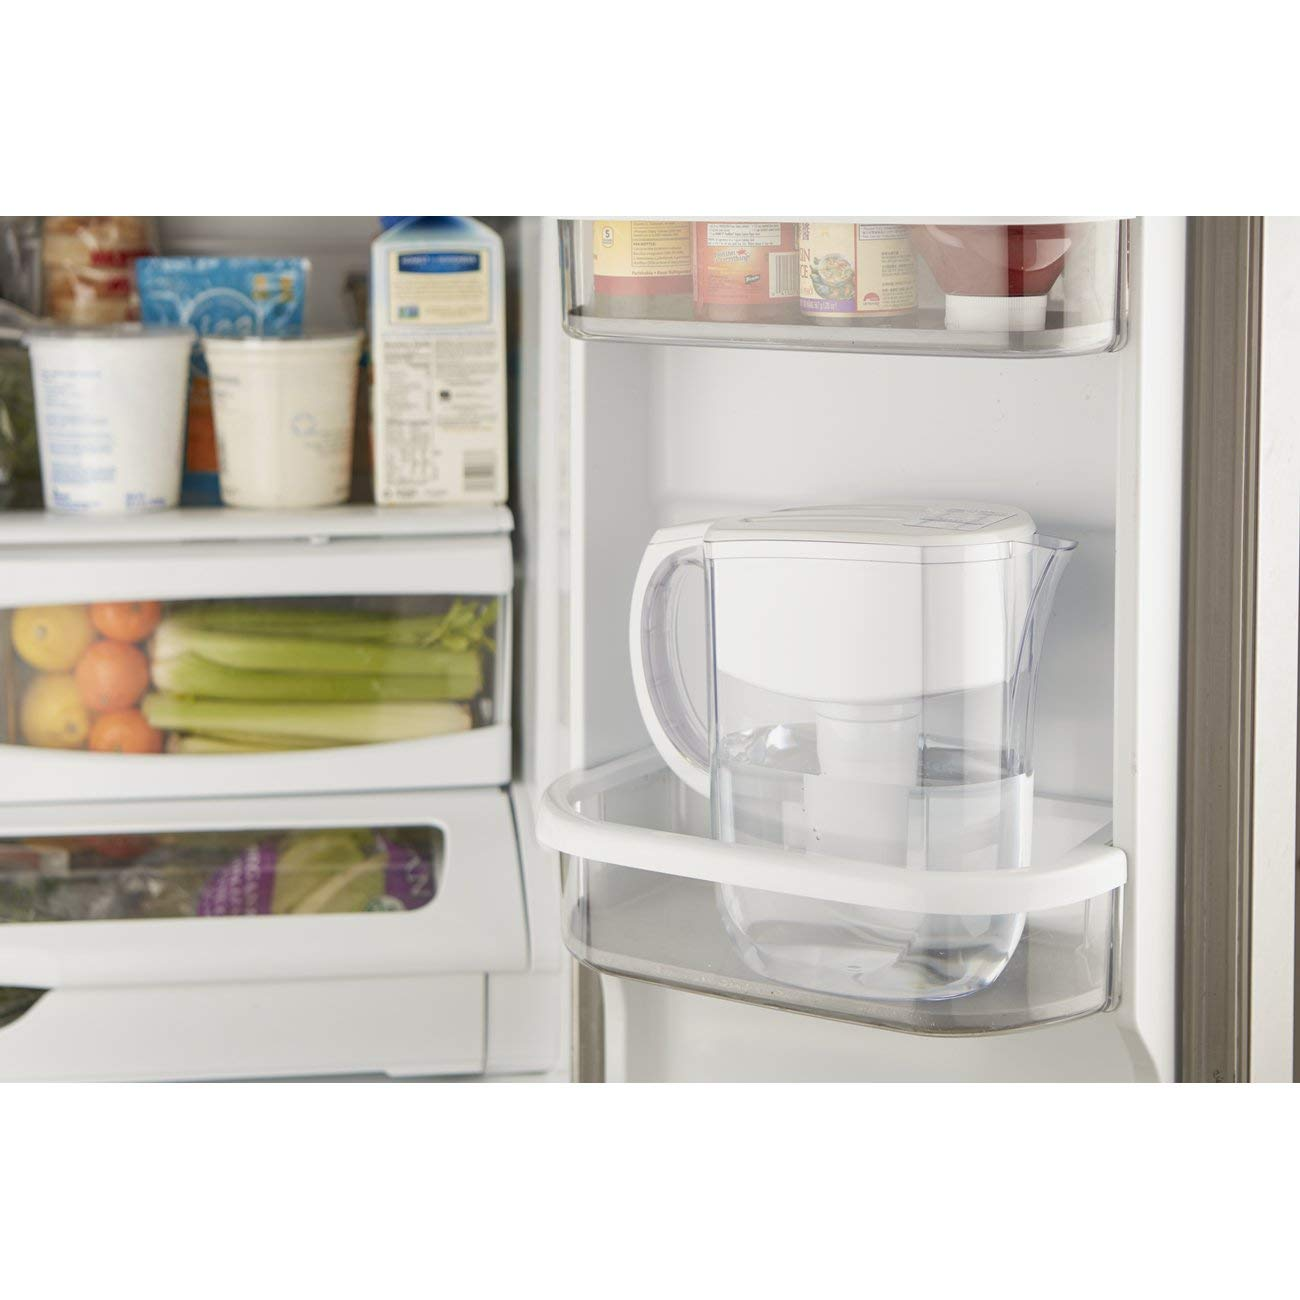 Brita Large 10 Cup Everyday Water Pitcher with Filter - BPA Free - White by Brita (Image #10)